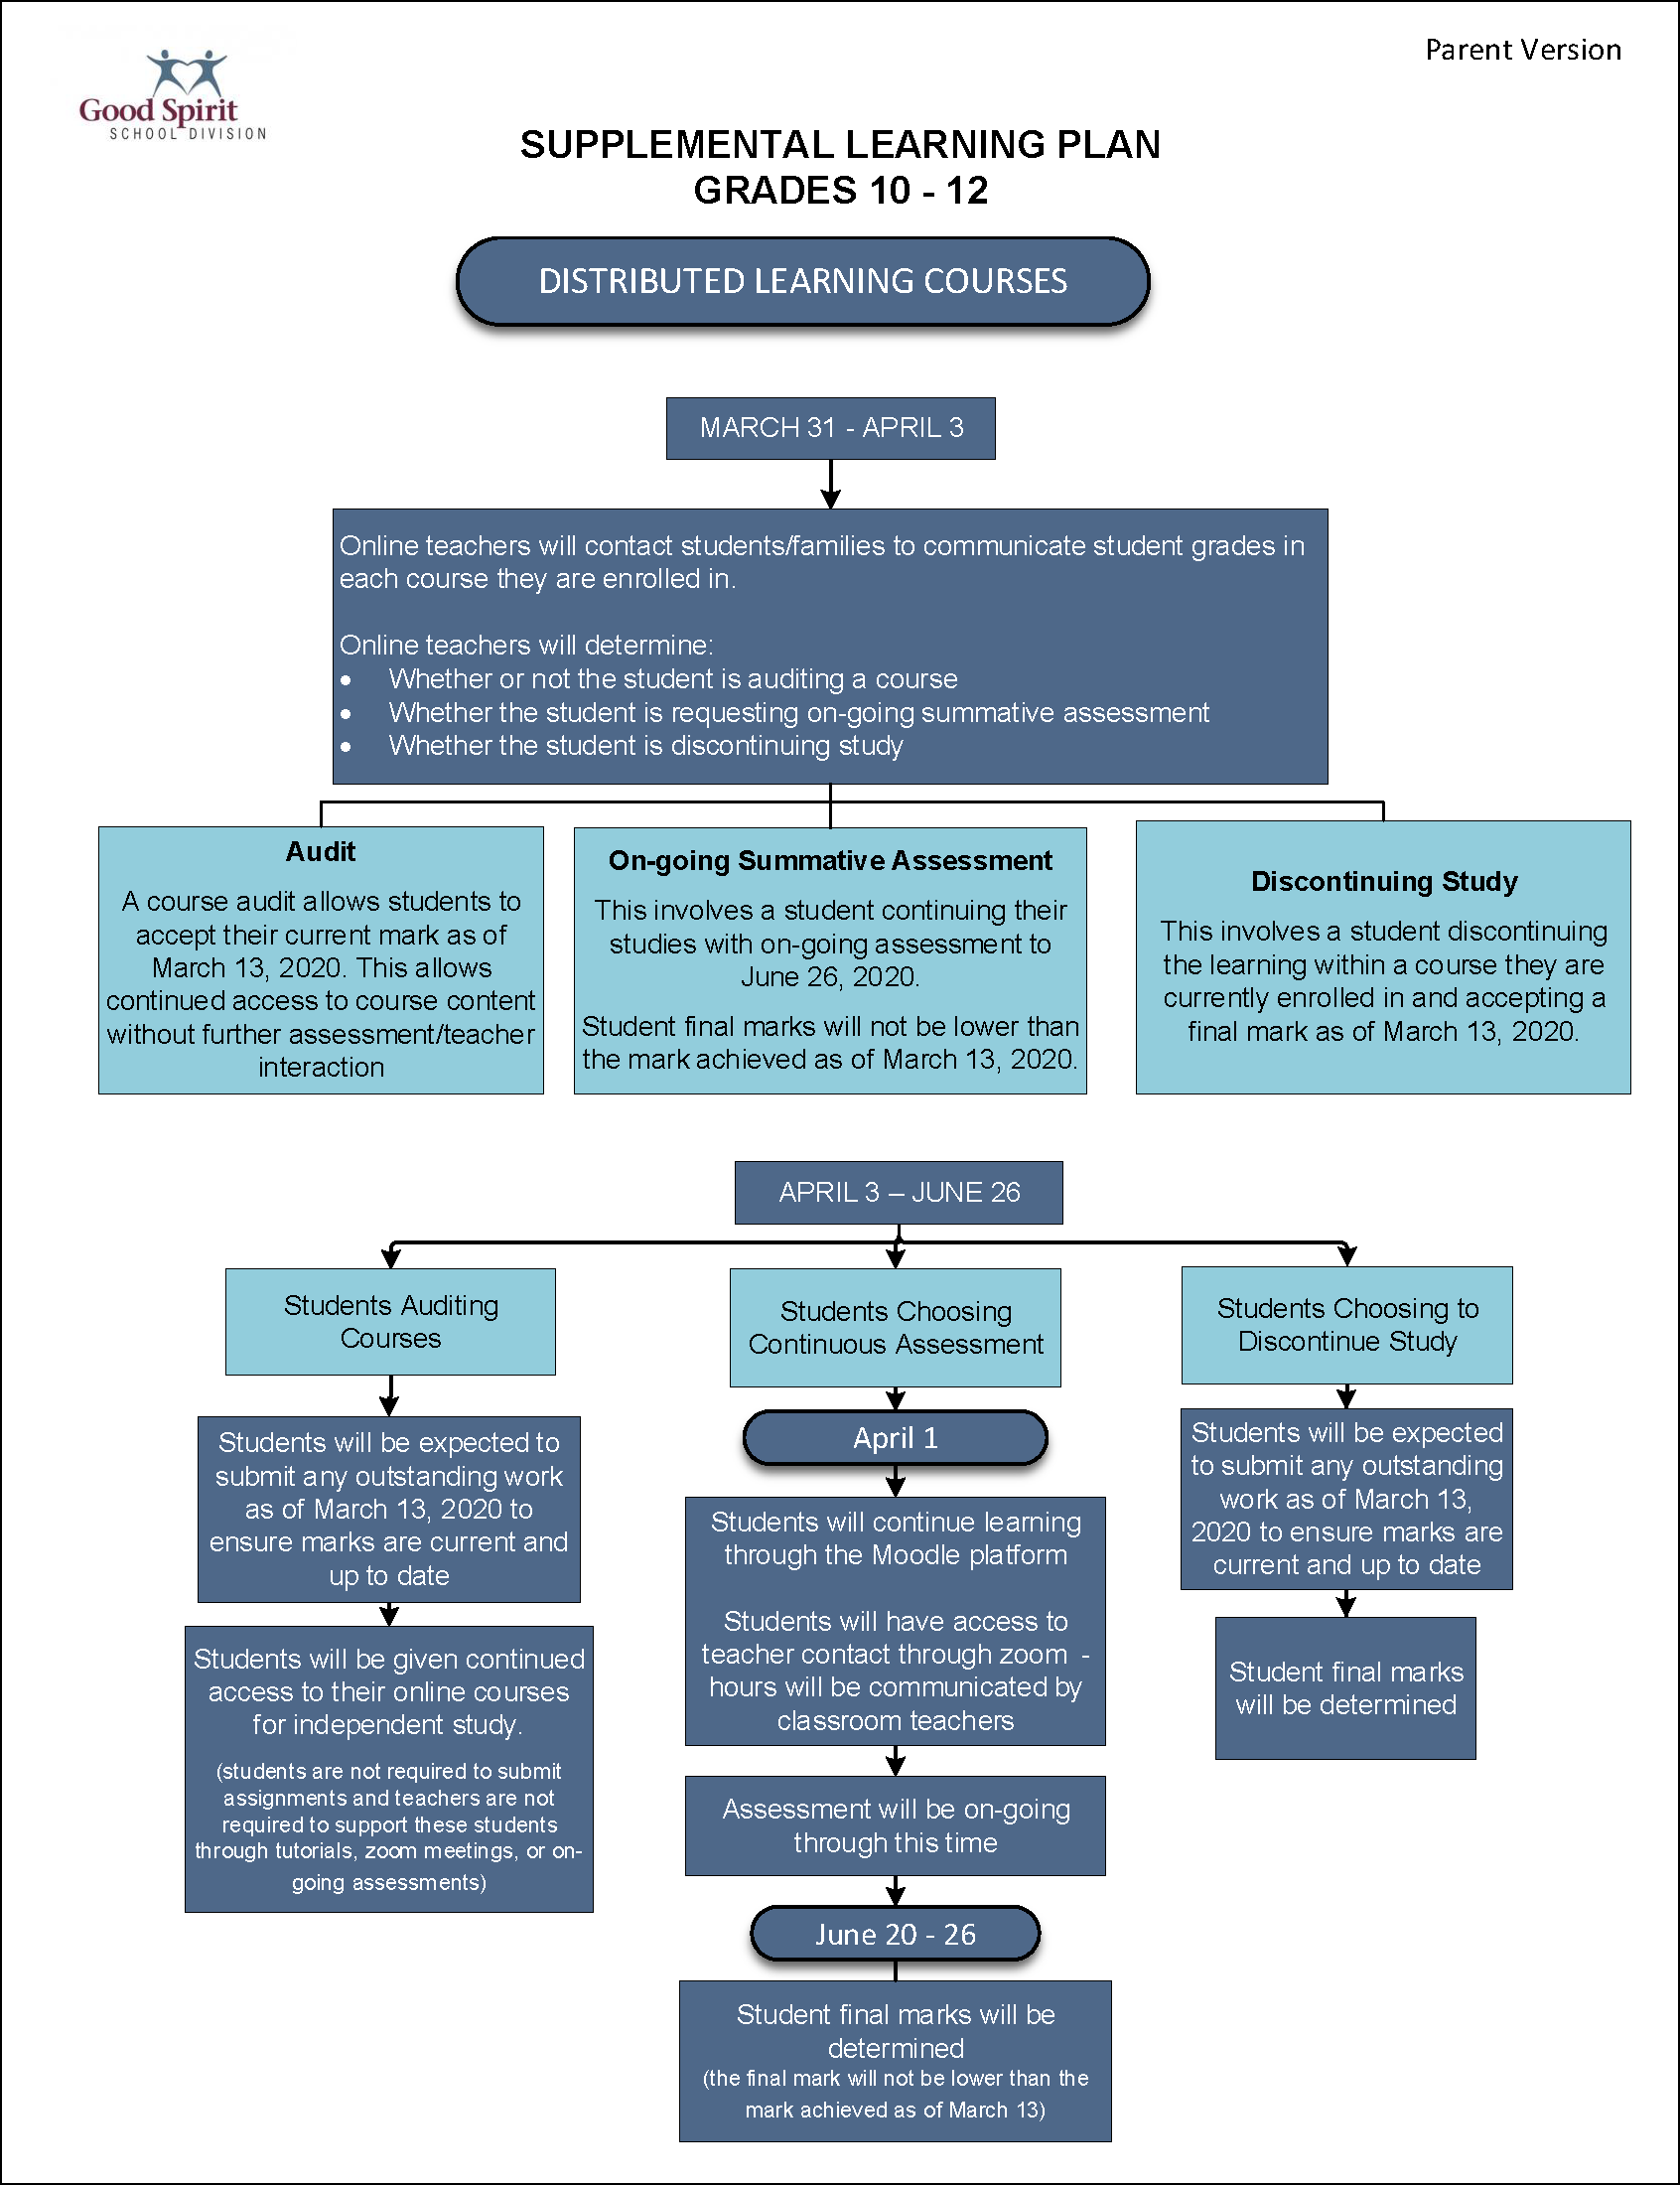 Gr. 10-12 DL Supplemental Learning Plan Flowchart.png